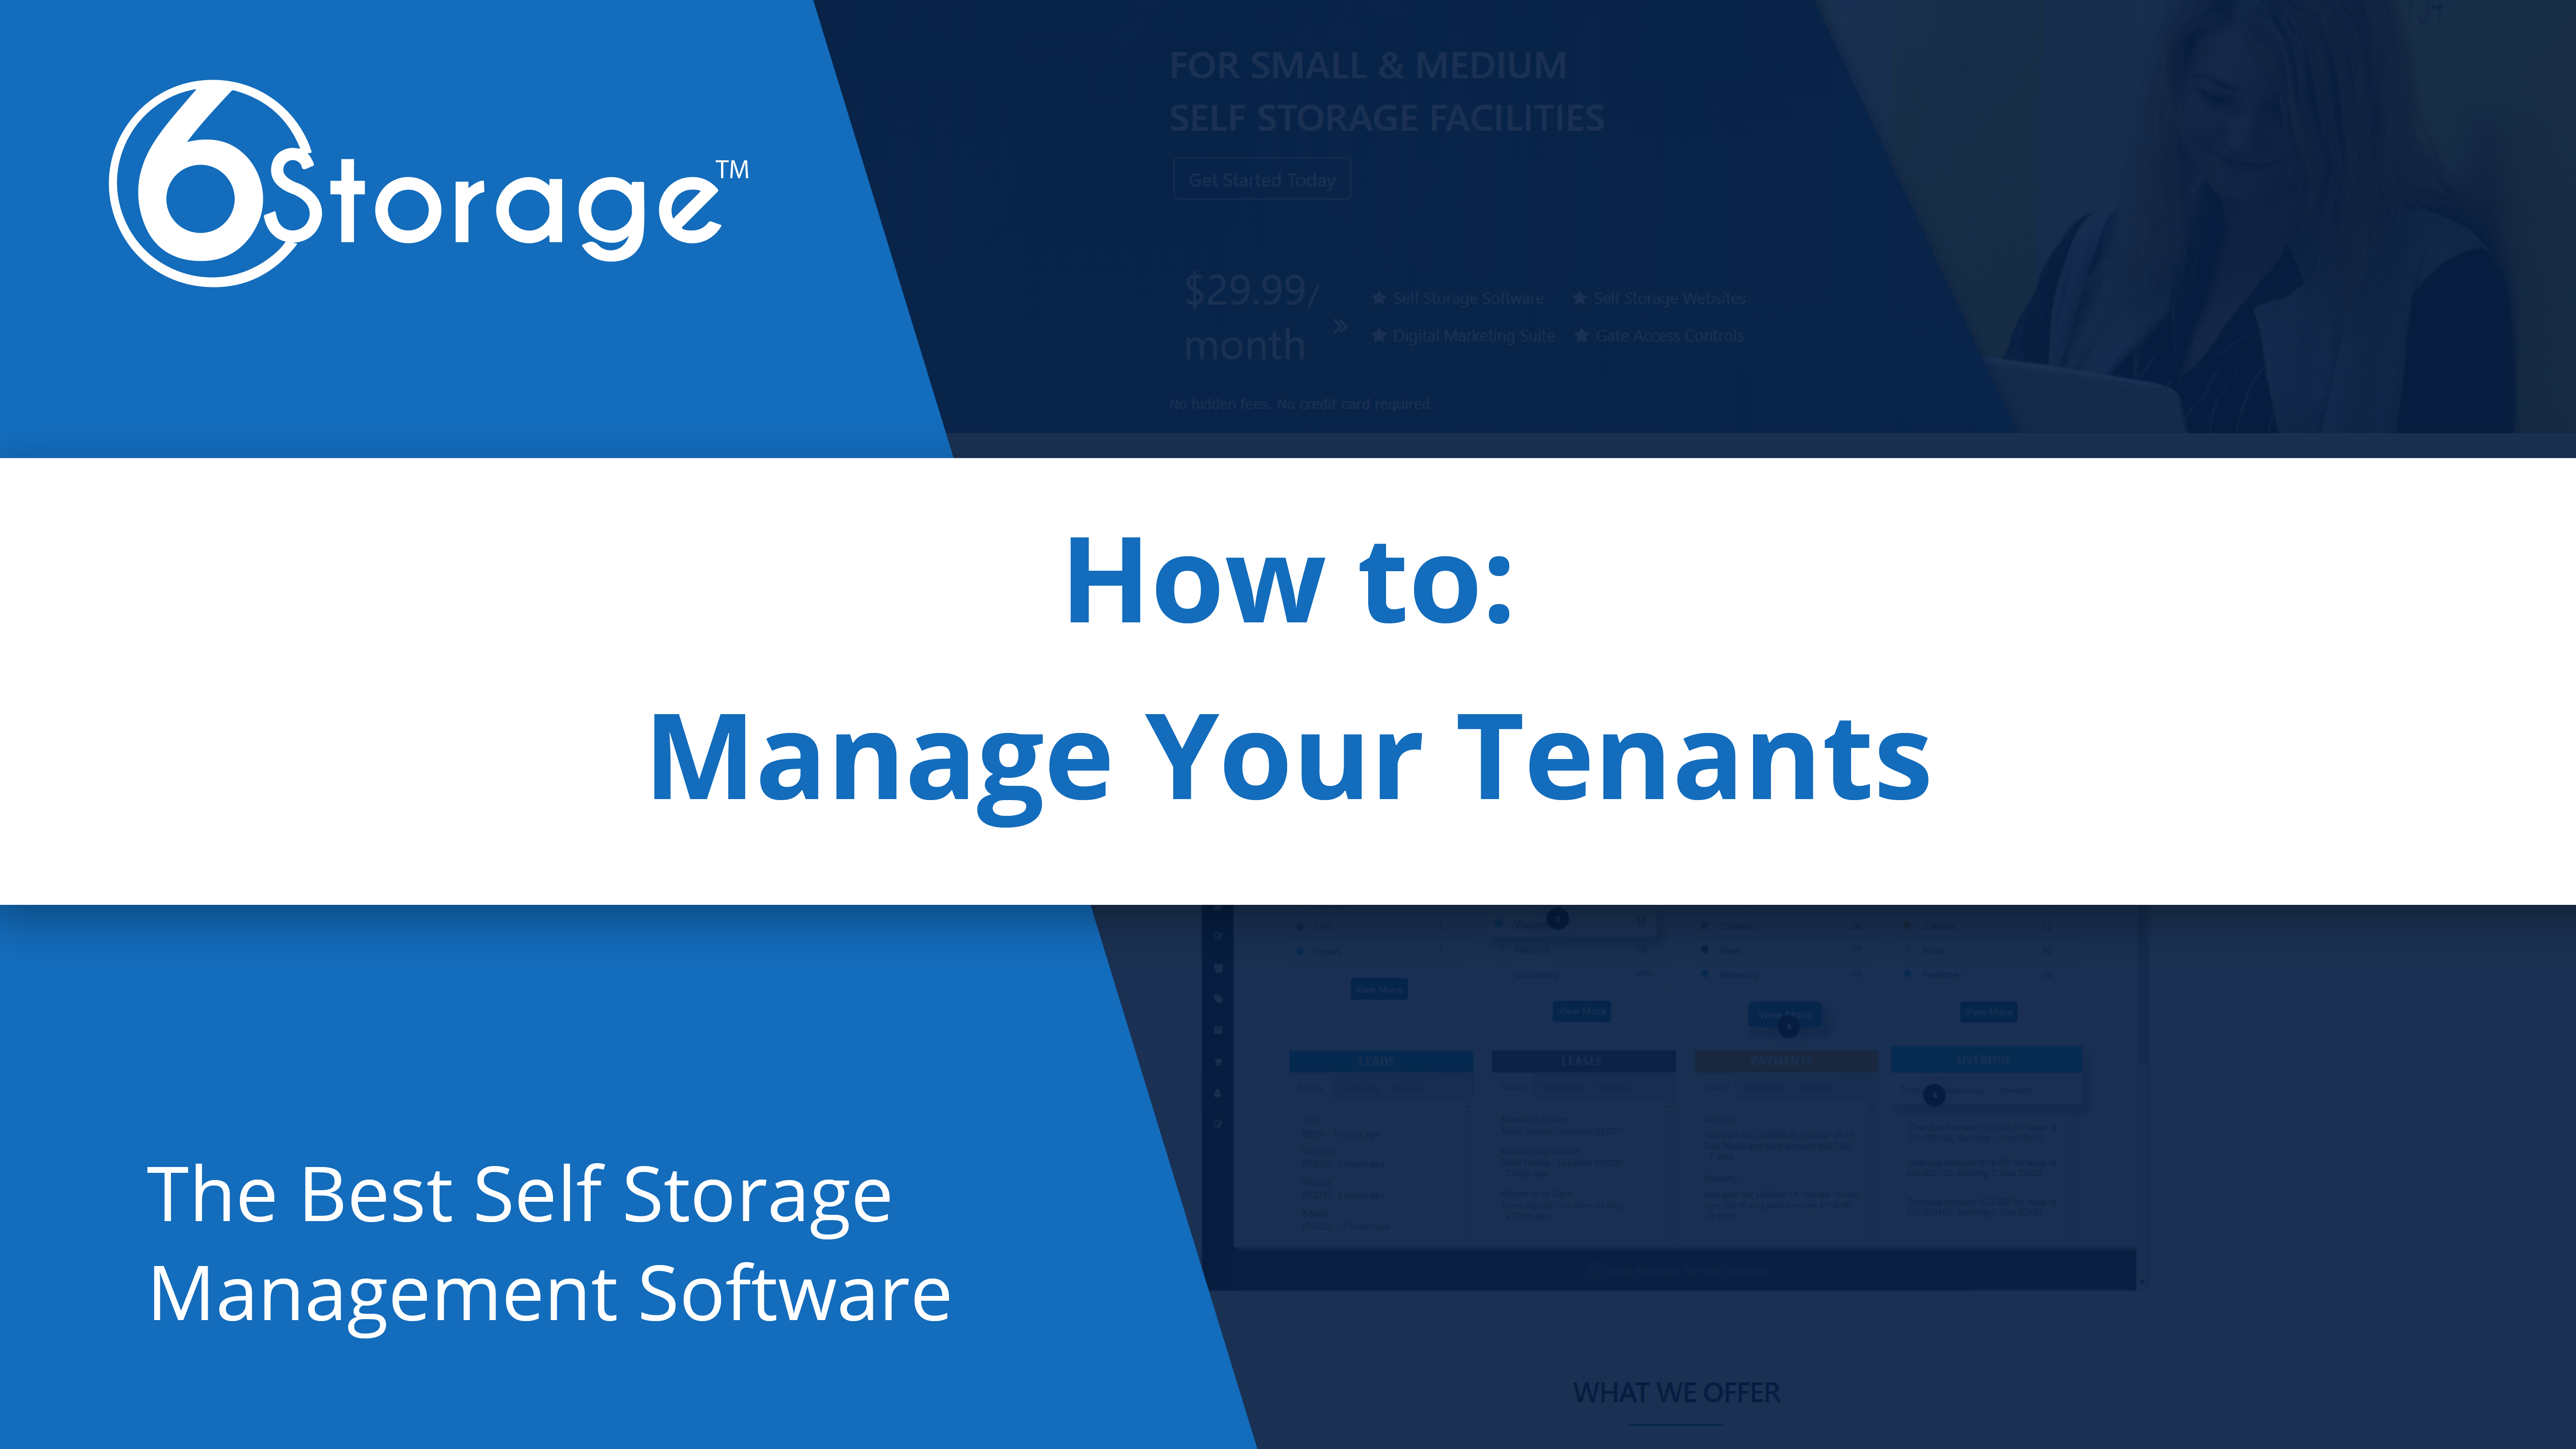 Manage Tenants